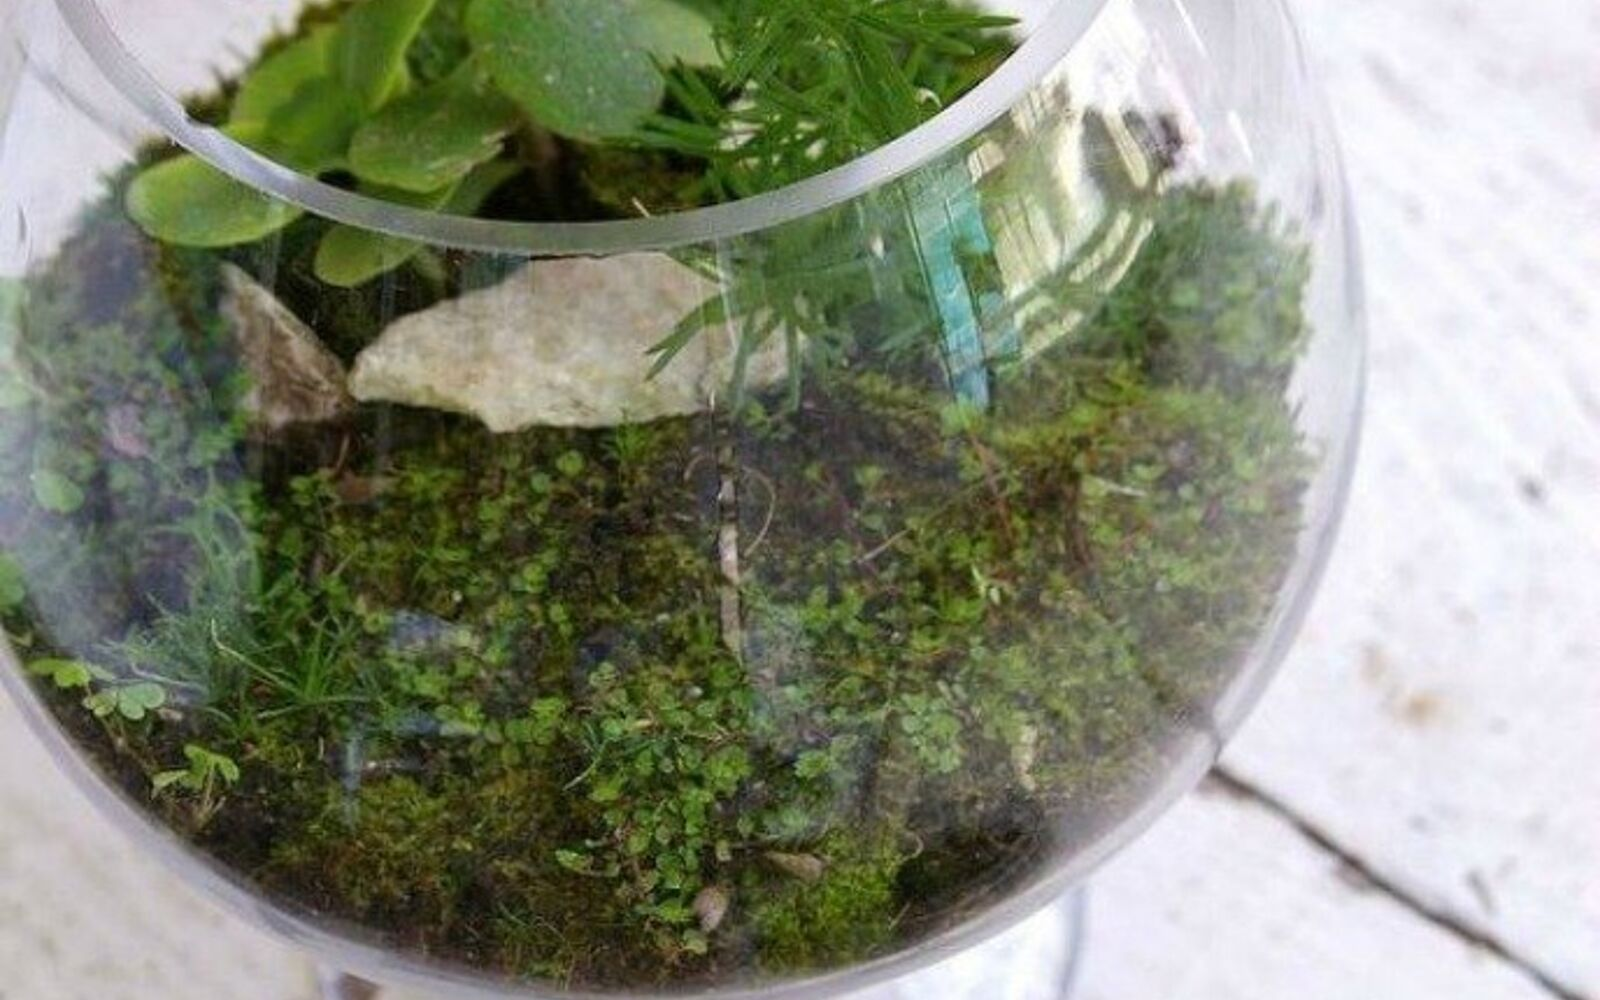 s 21 of the cutest terrariums we ve ever seen, gardening, terrarium, This one made in a punch bowl and glass